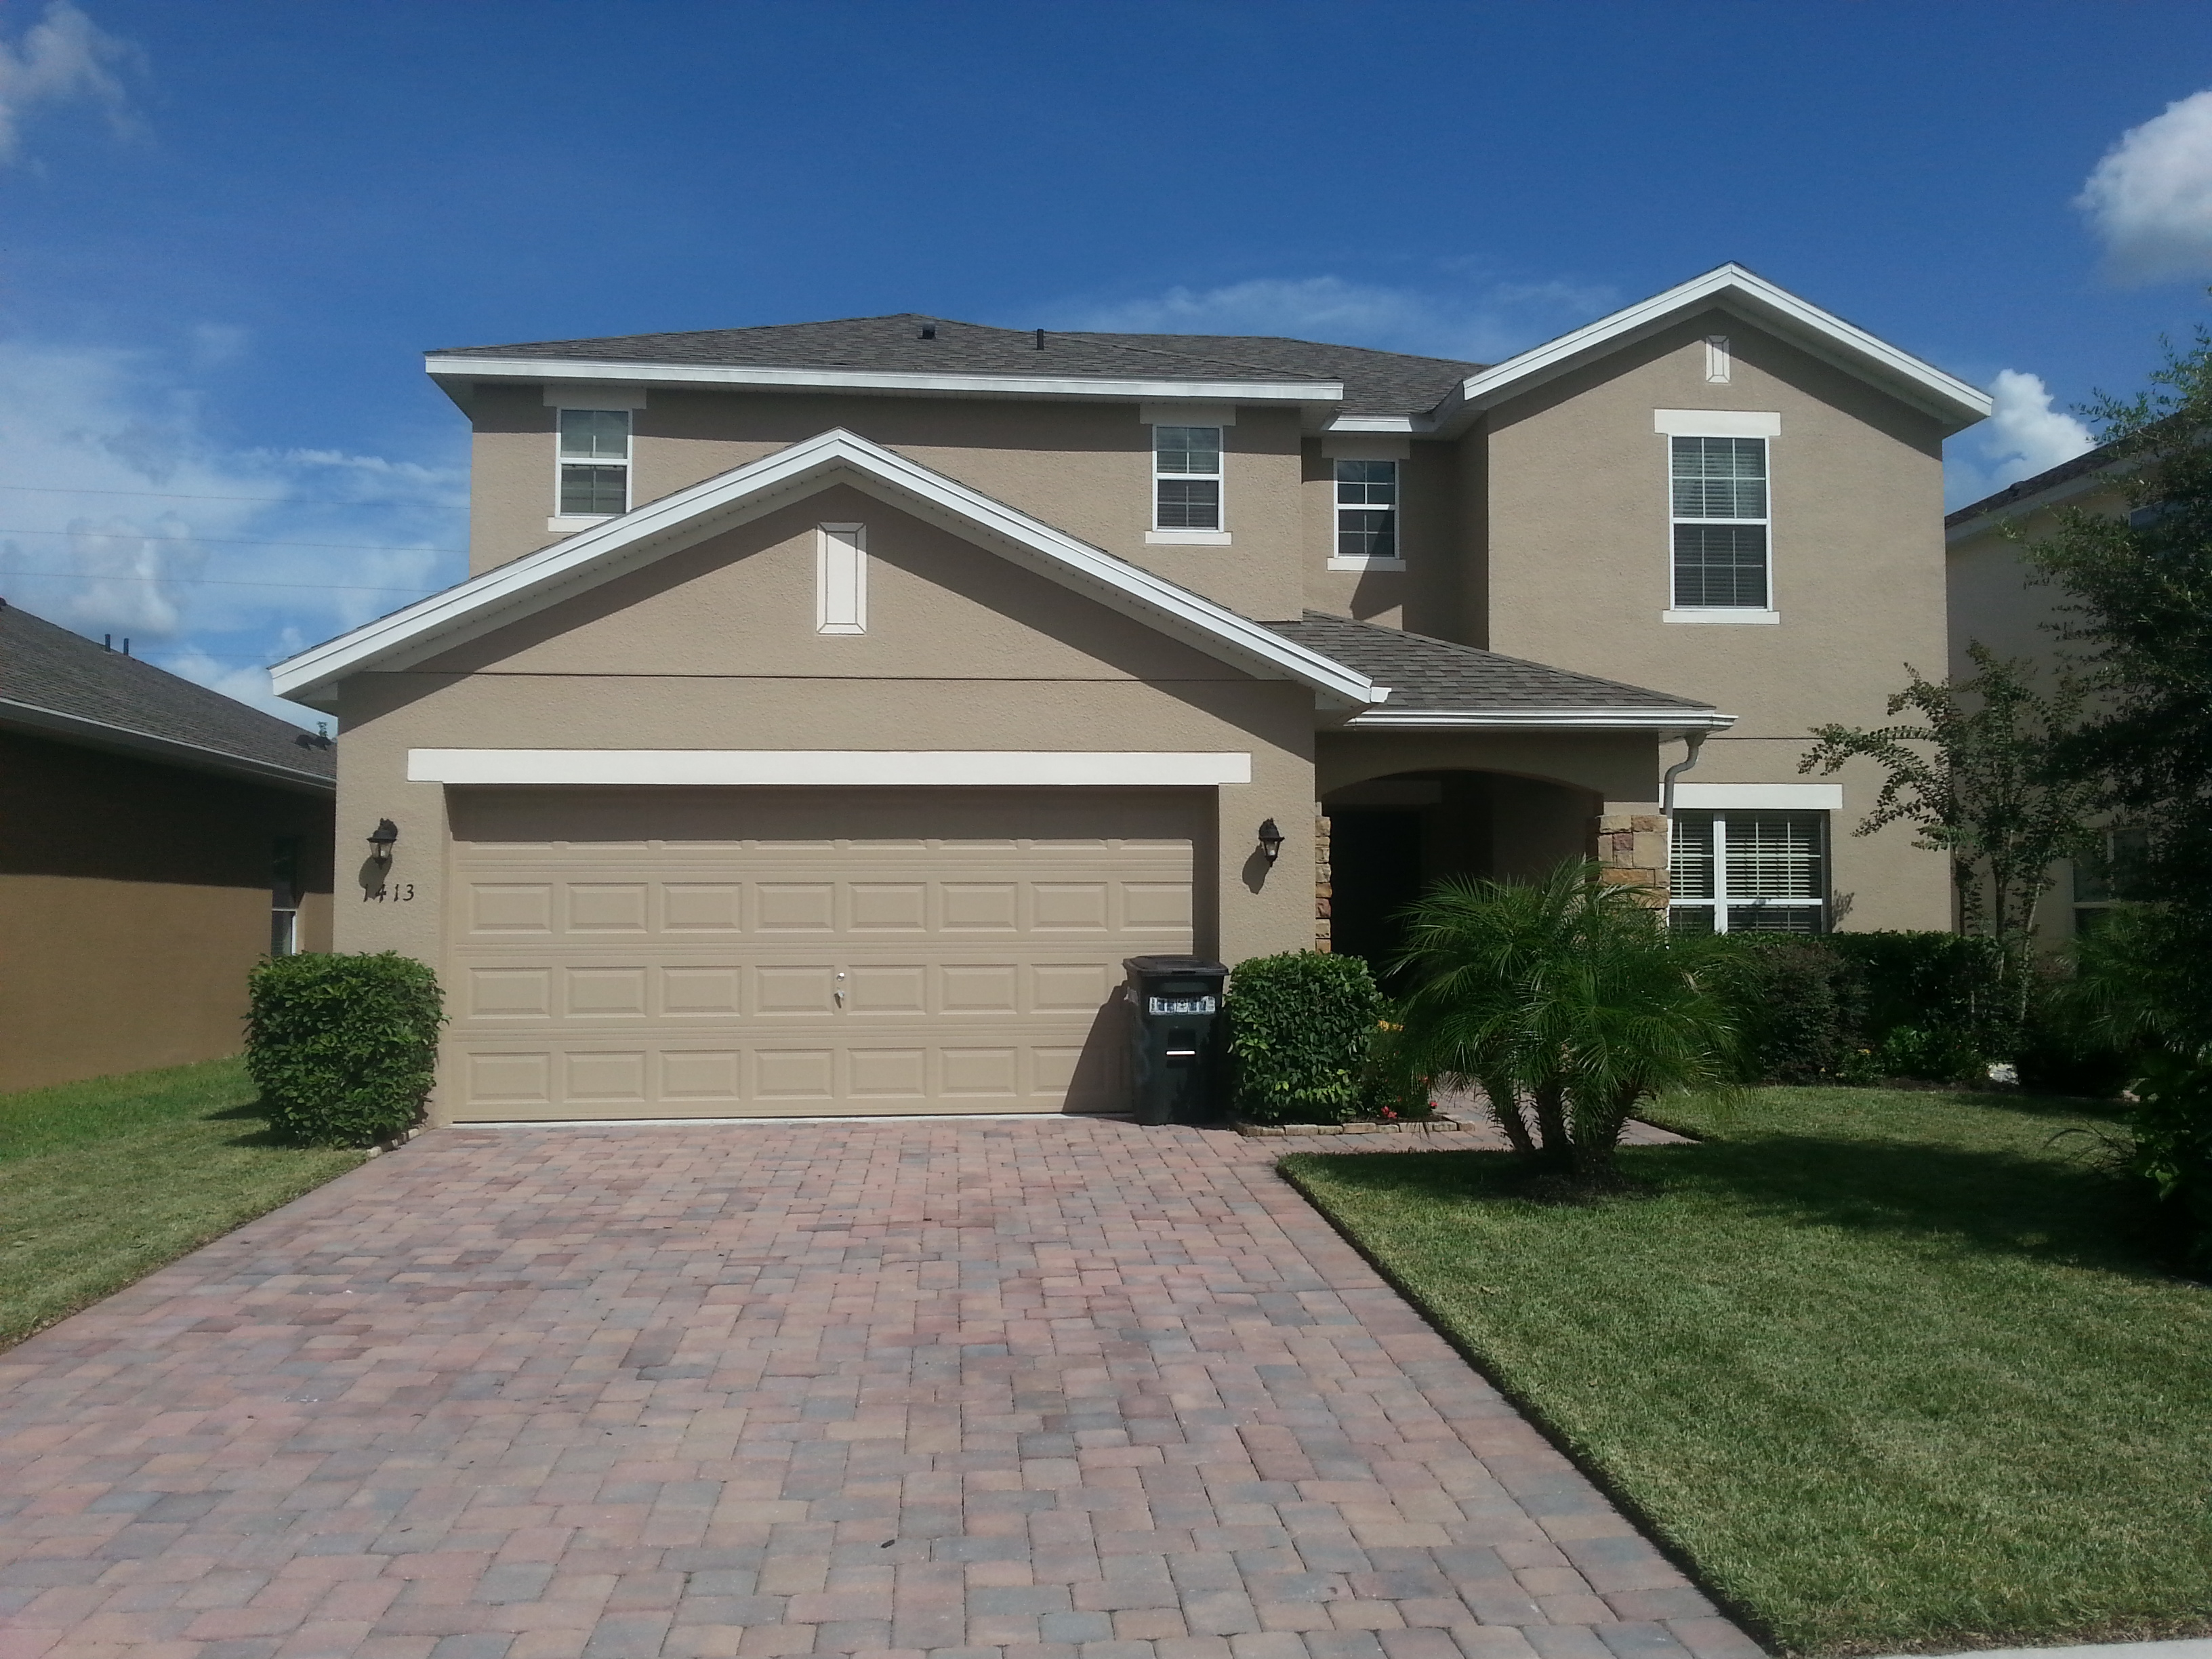 5 bedroom home for sale near champions gate florida real for 5 bedroom homes for sale in florida